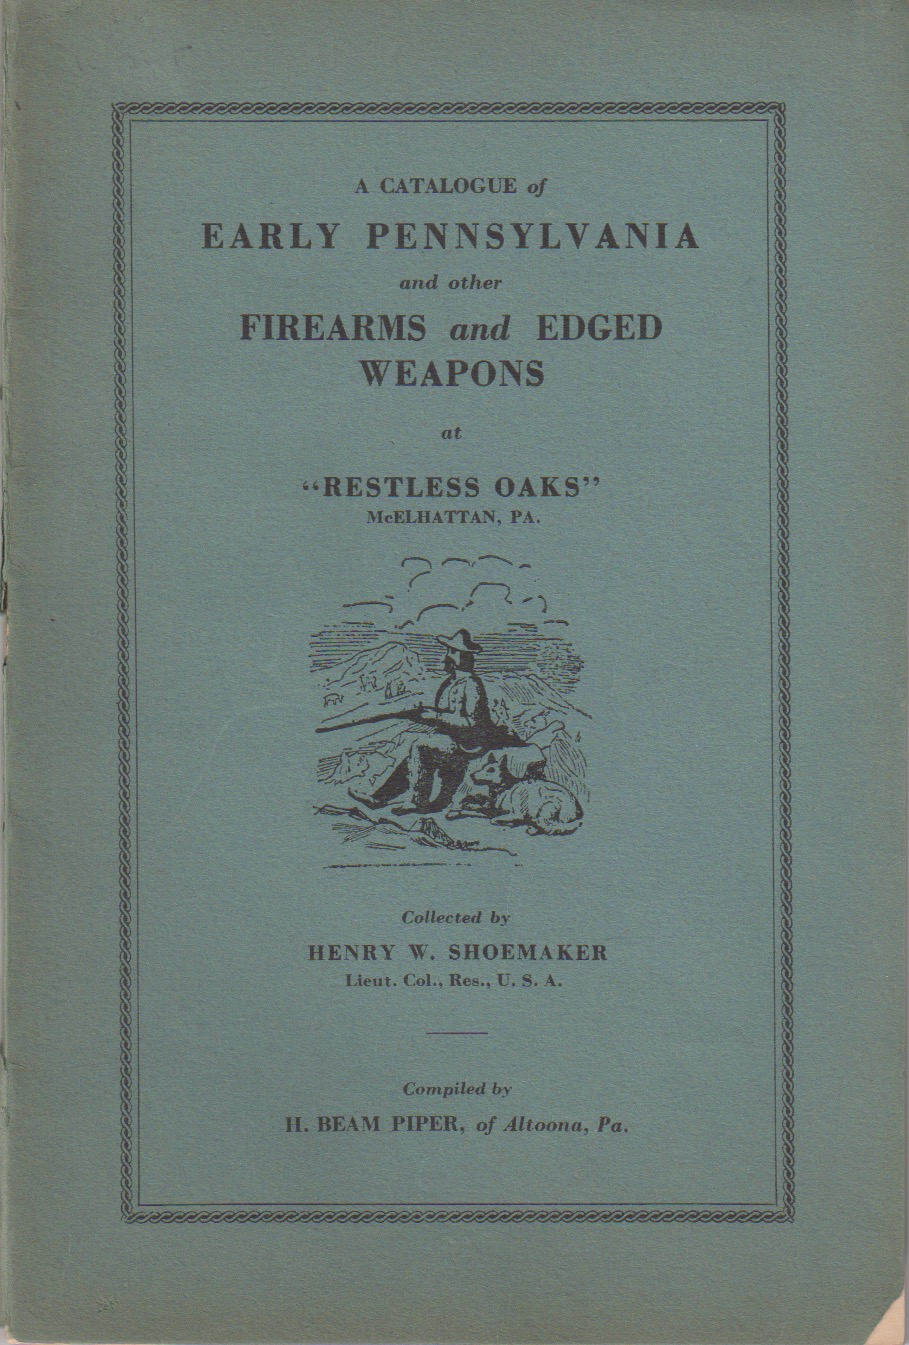 Image - Restlless Oaks catalogue, 1927